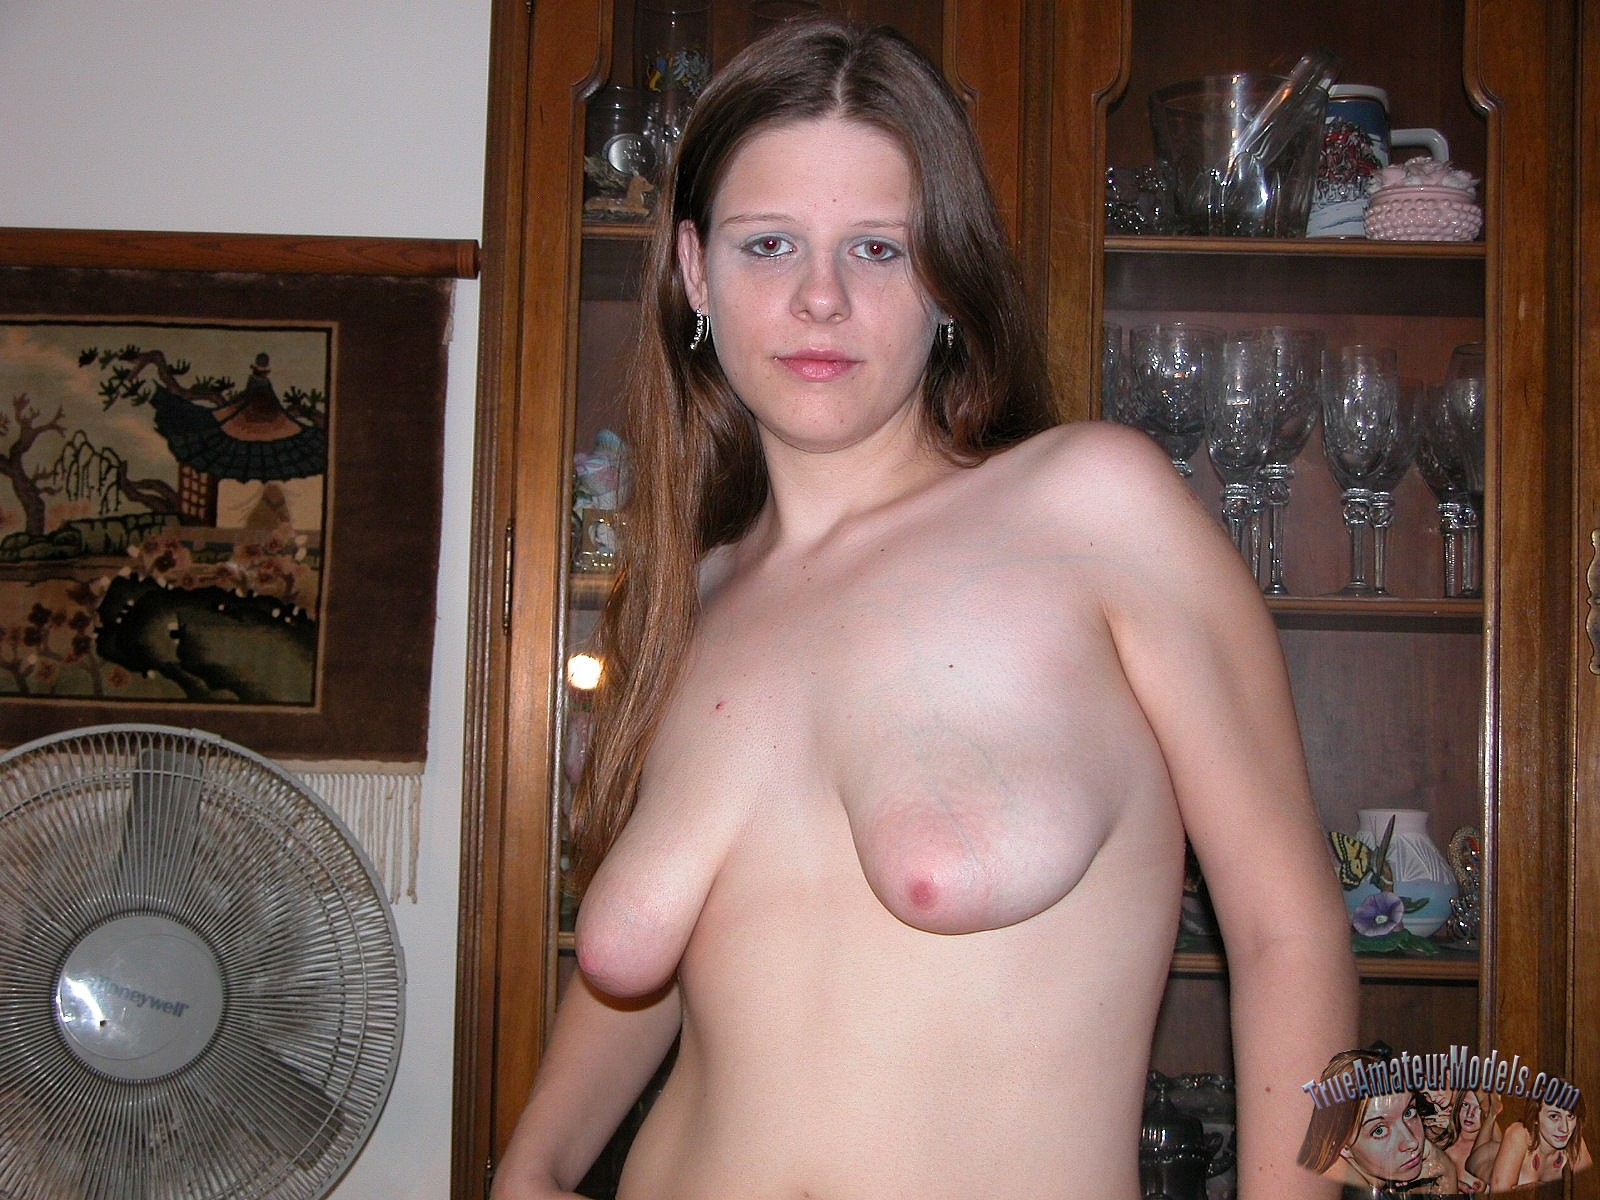 Saggy Tits On A Teen Cutie  Amateurpornphotos-3098